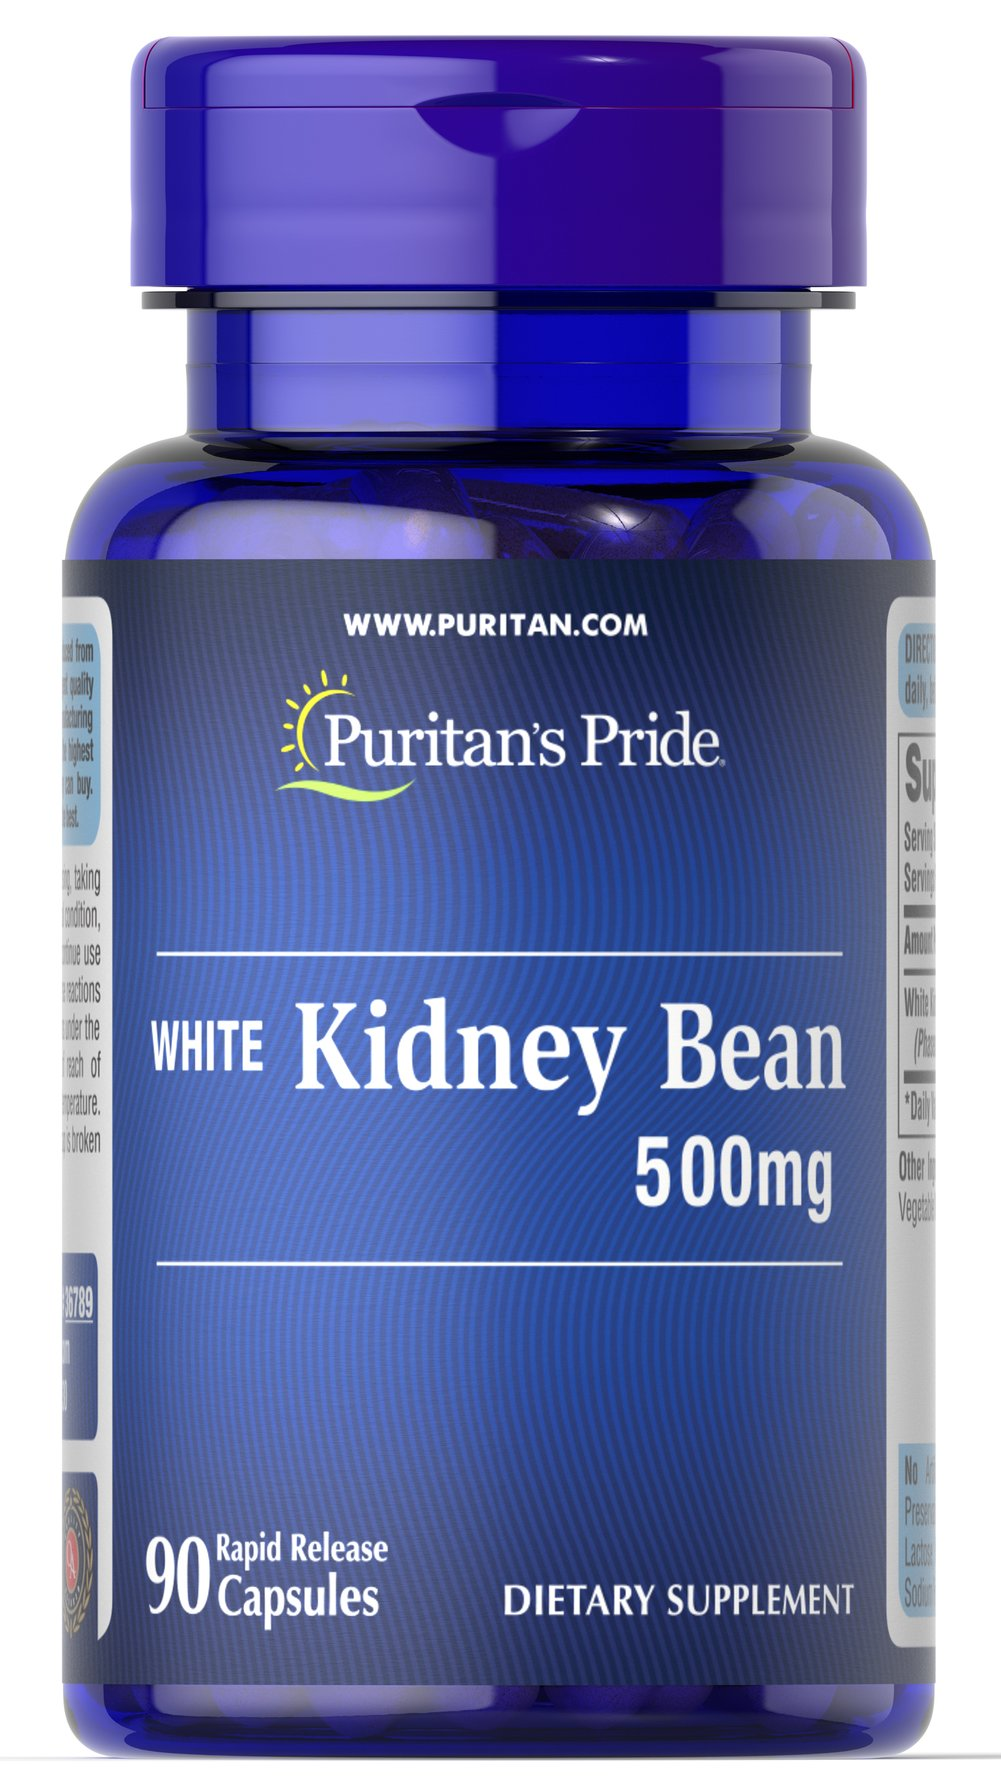 White Kidney Bean <p>We are proud to bring you White Kidney Bean.   Look to Puritan's Pride for high quality products and great nutrition at the best possible prices. </p><p></p> 90 Capsules 500 mg $9.79